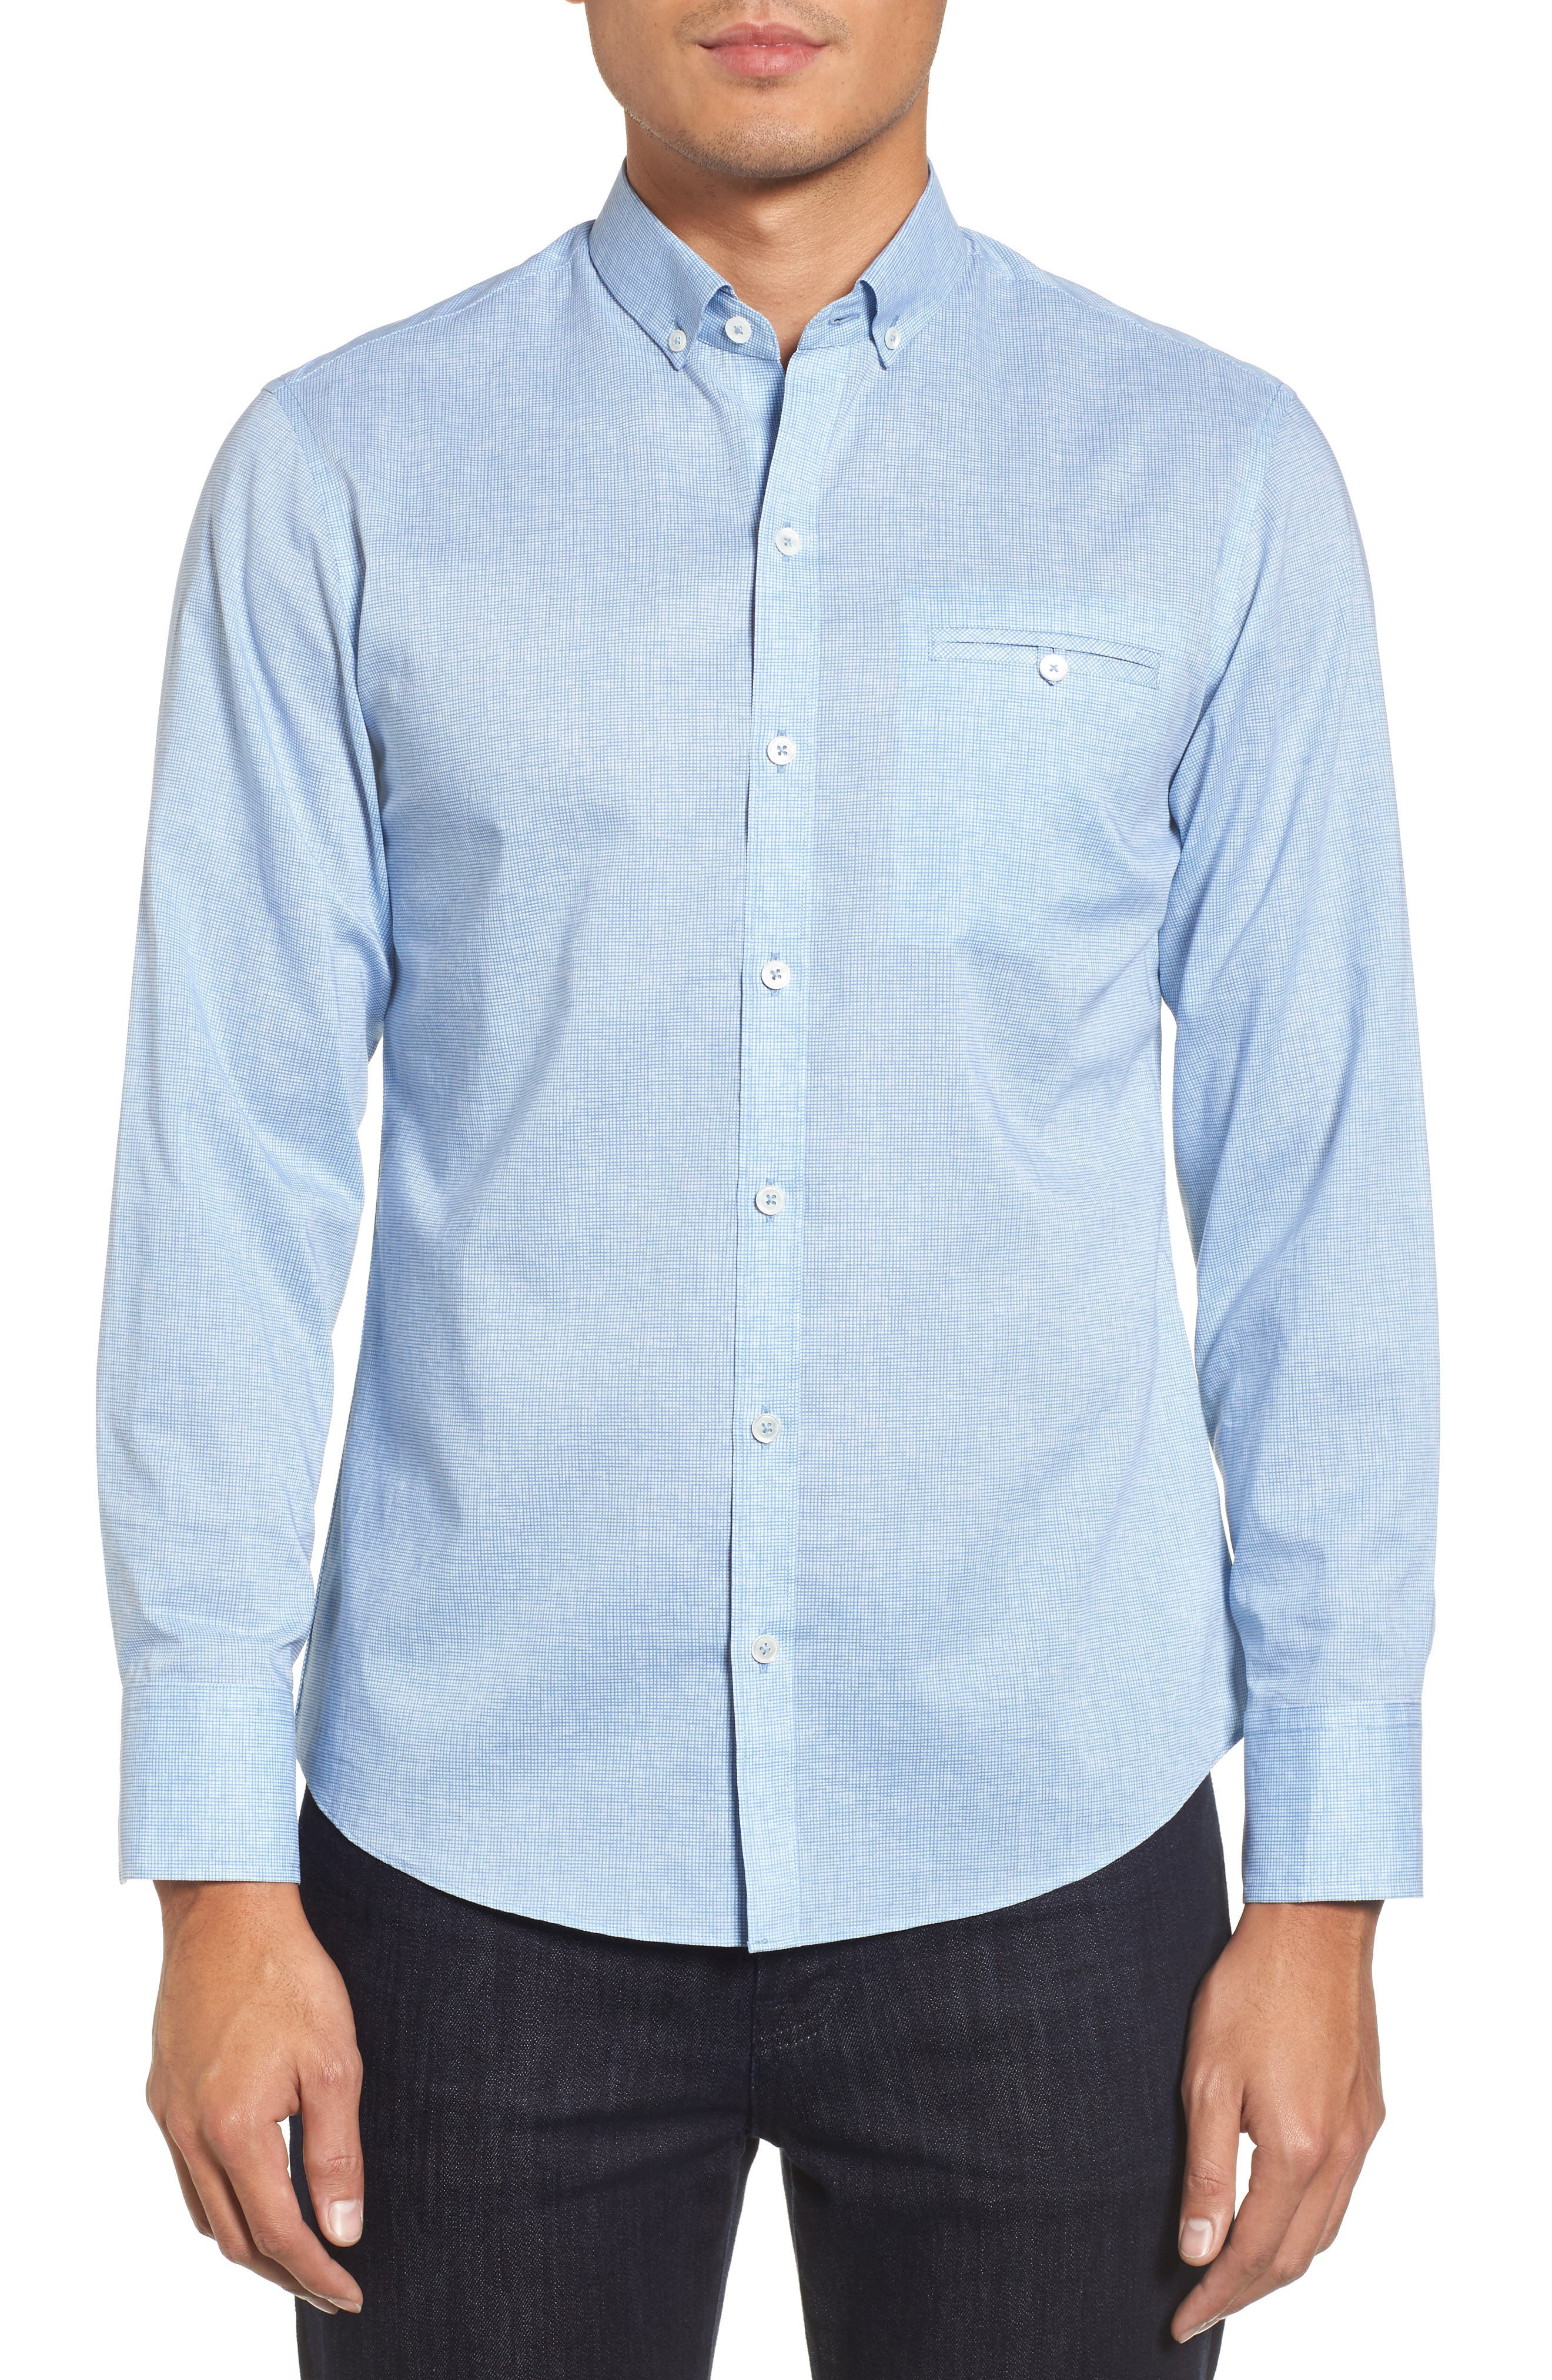 Forrest Textured Woven Sport Shirt,                             Main thumbnail 1, color,                             Ice Blue